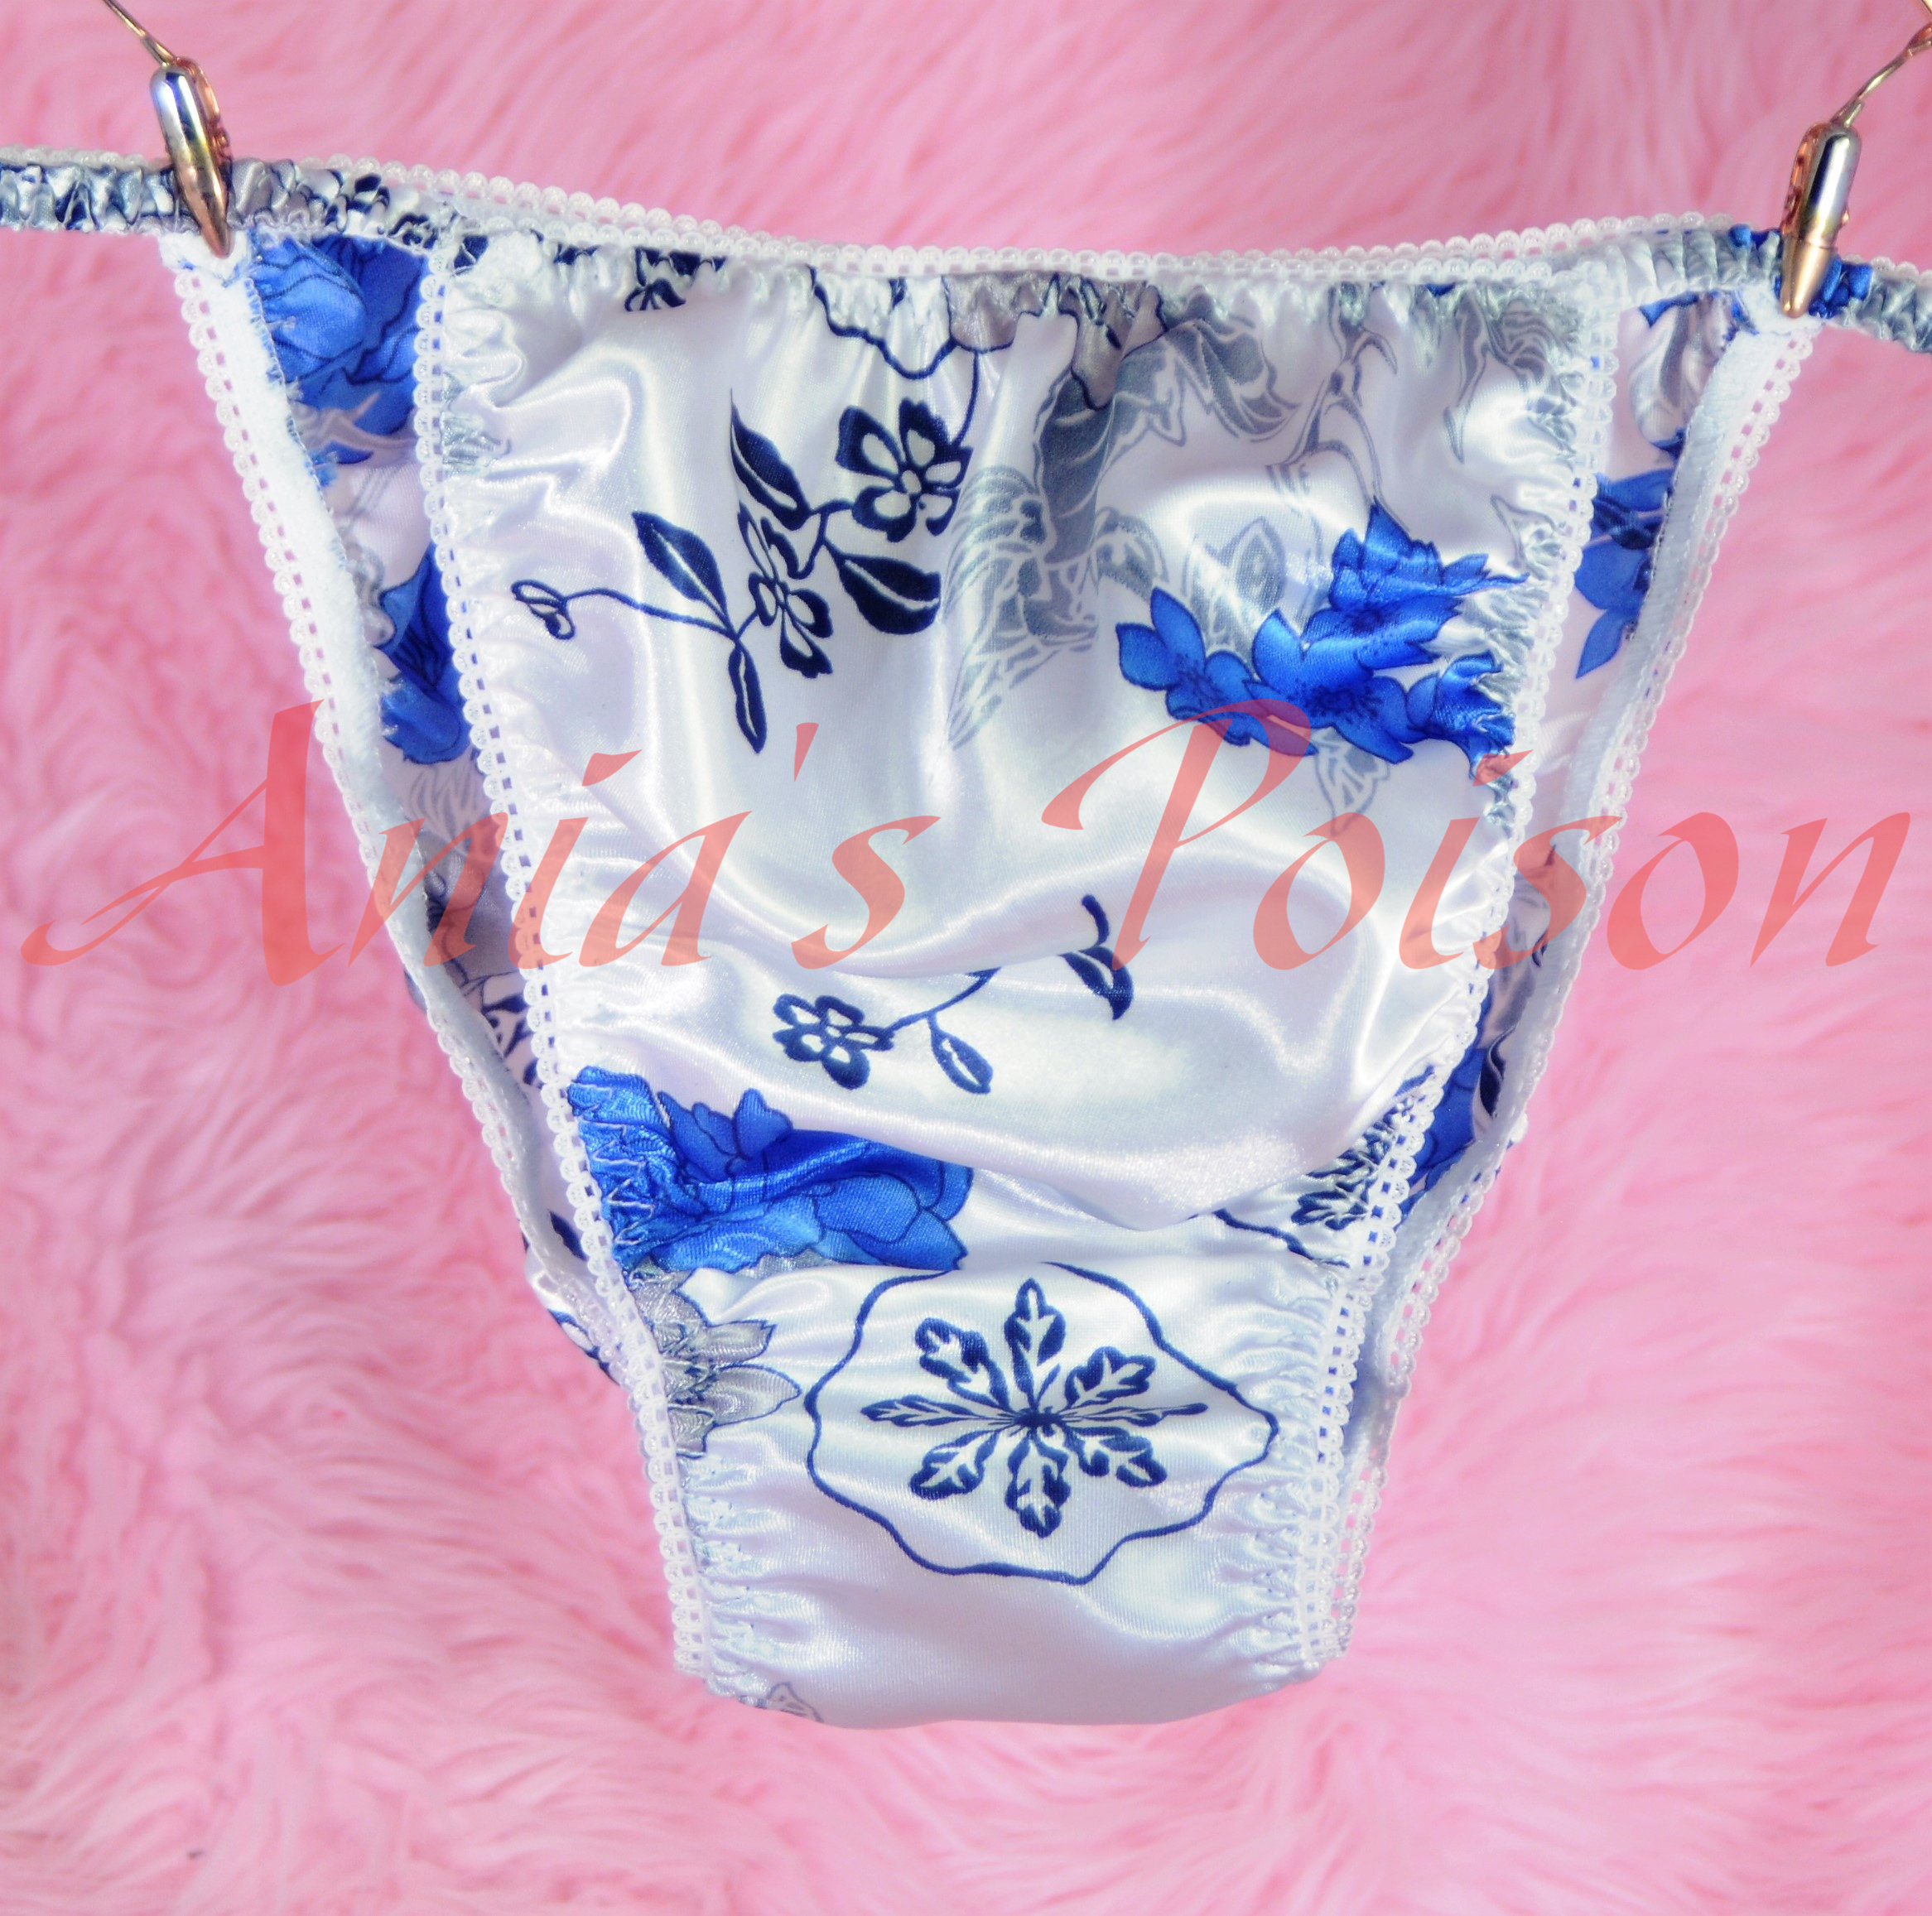 Ania's Poison MANties S - XXL Floral watercolor ladies Prints Super Rare 100% polyester string bikini sissy mens underwear panties 00183